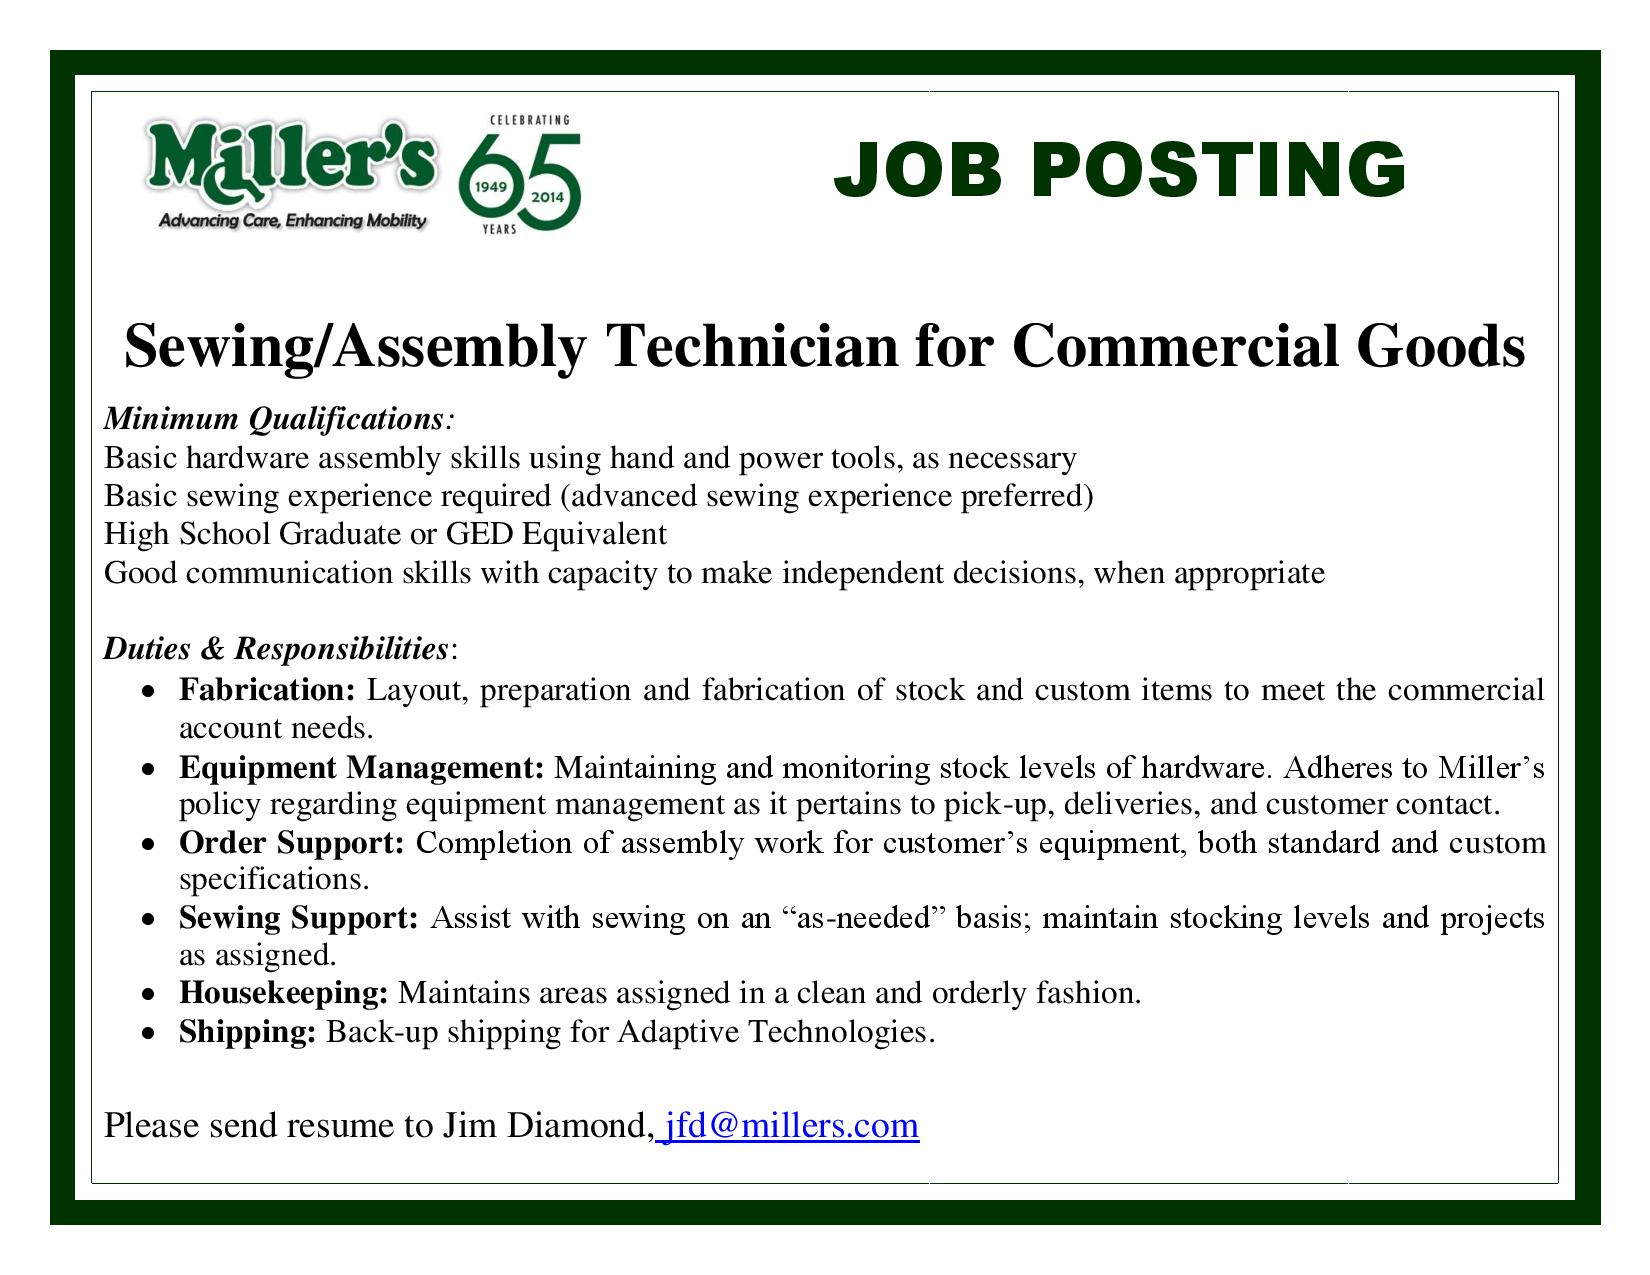 Assembly-Sewing Technician for Commercial Goods